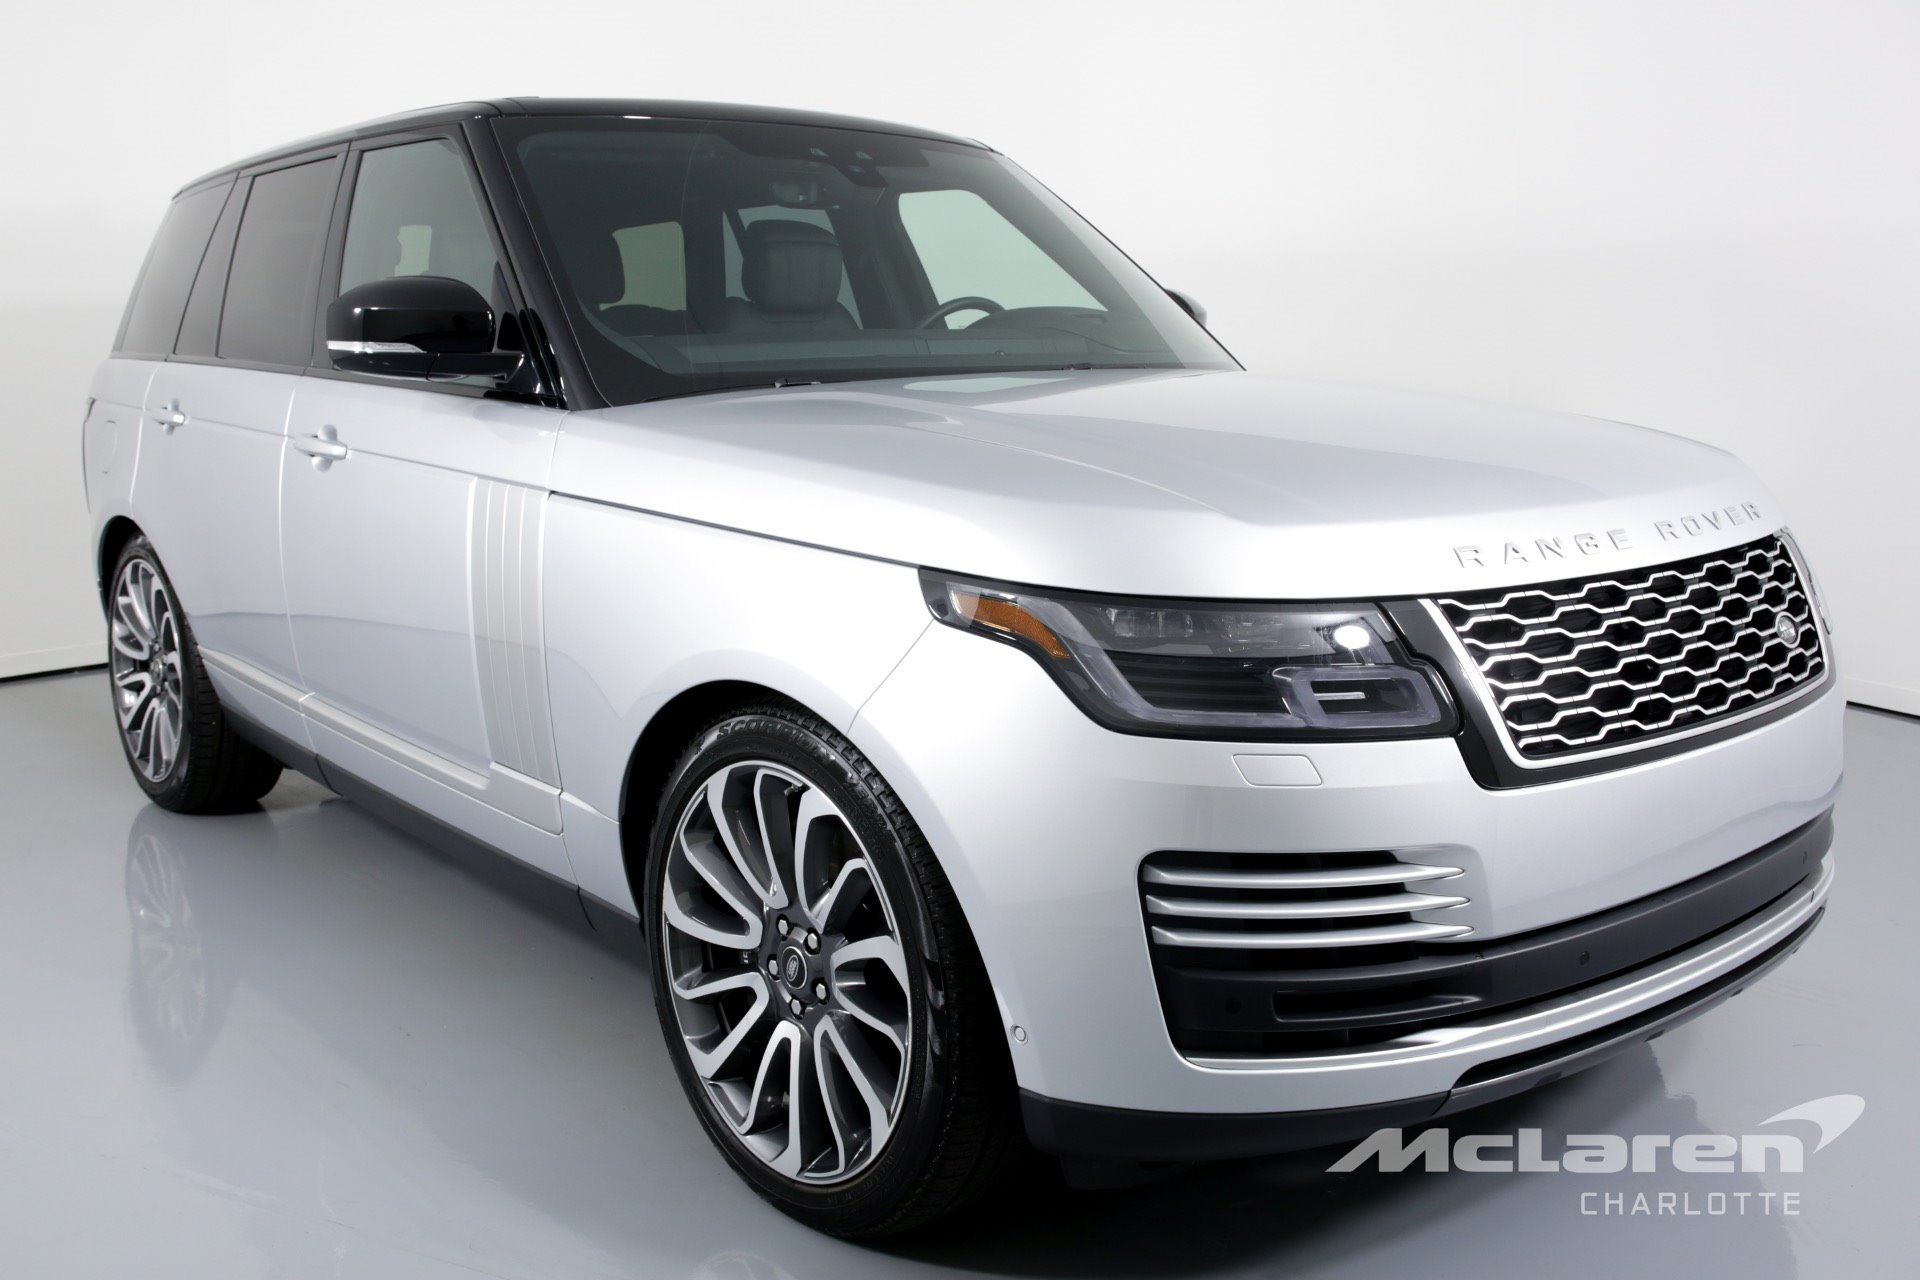 New 2019 Land Rover-Range Rover HSE Range Rover HSE for sale $94,950 at M and V Leasing in Brooklyn NY 11223 1